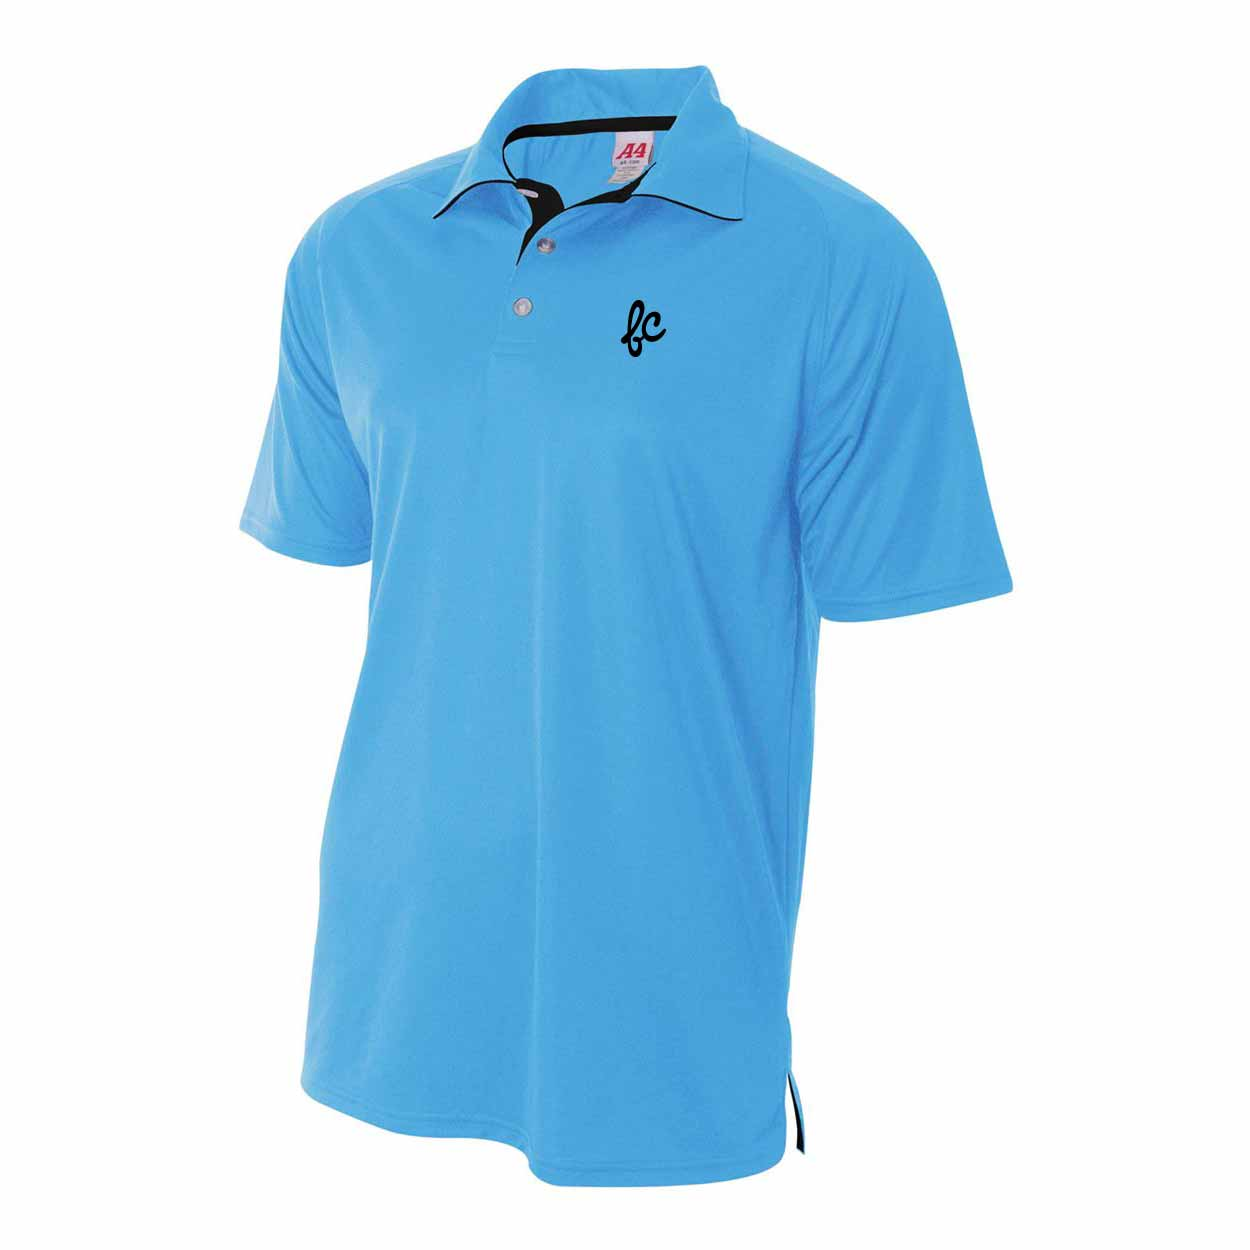 Men's Polo - Cursive-S - Fairly Casual - Clothing